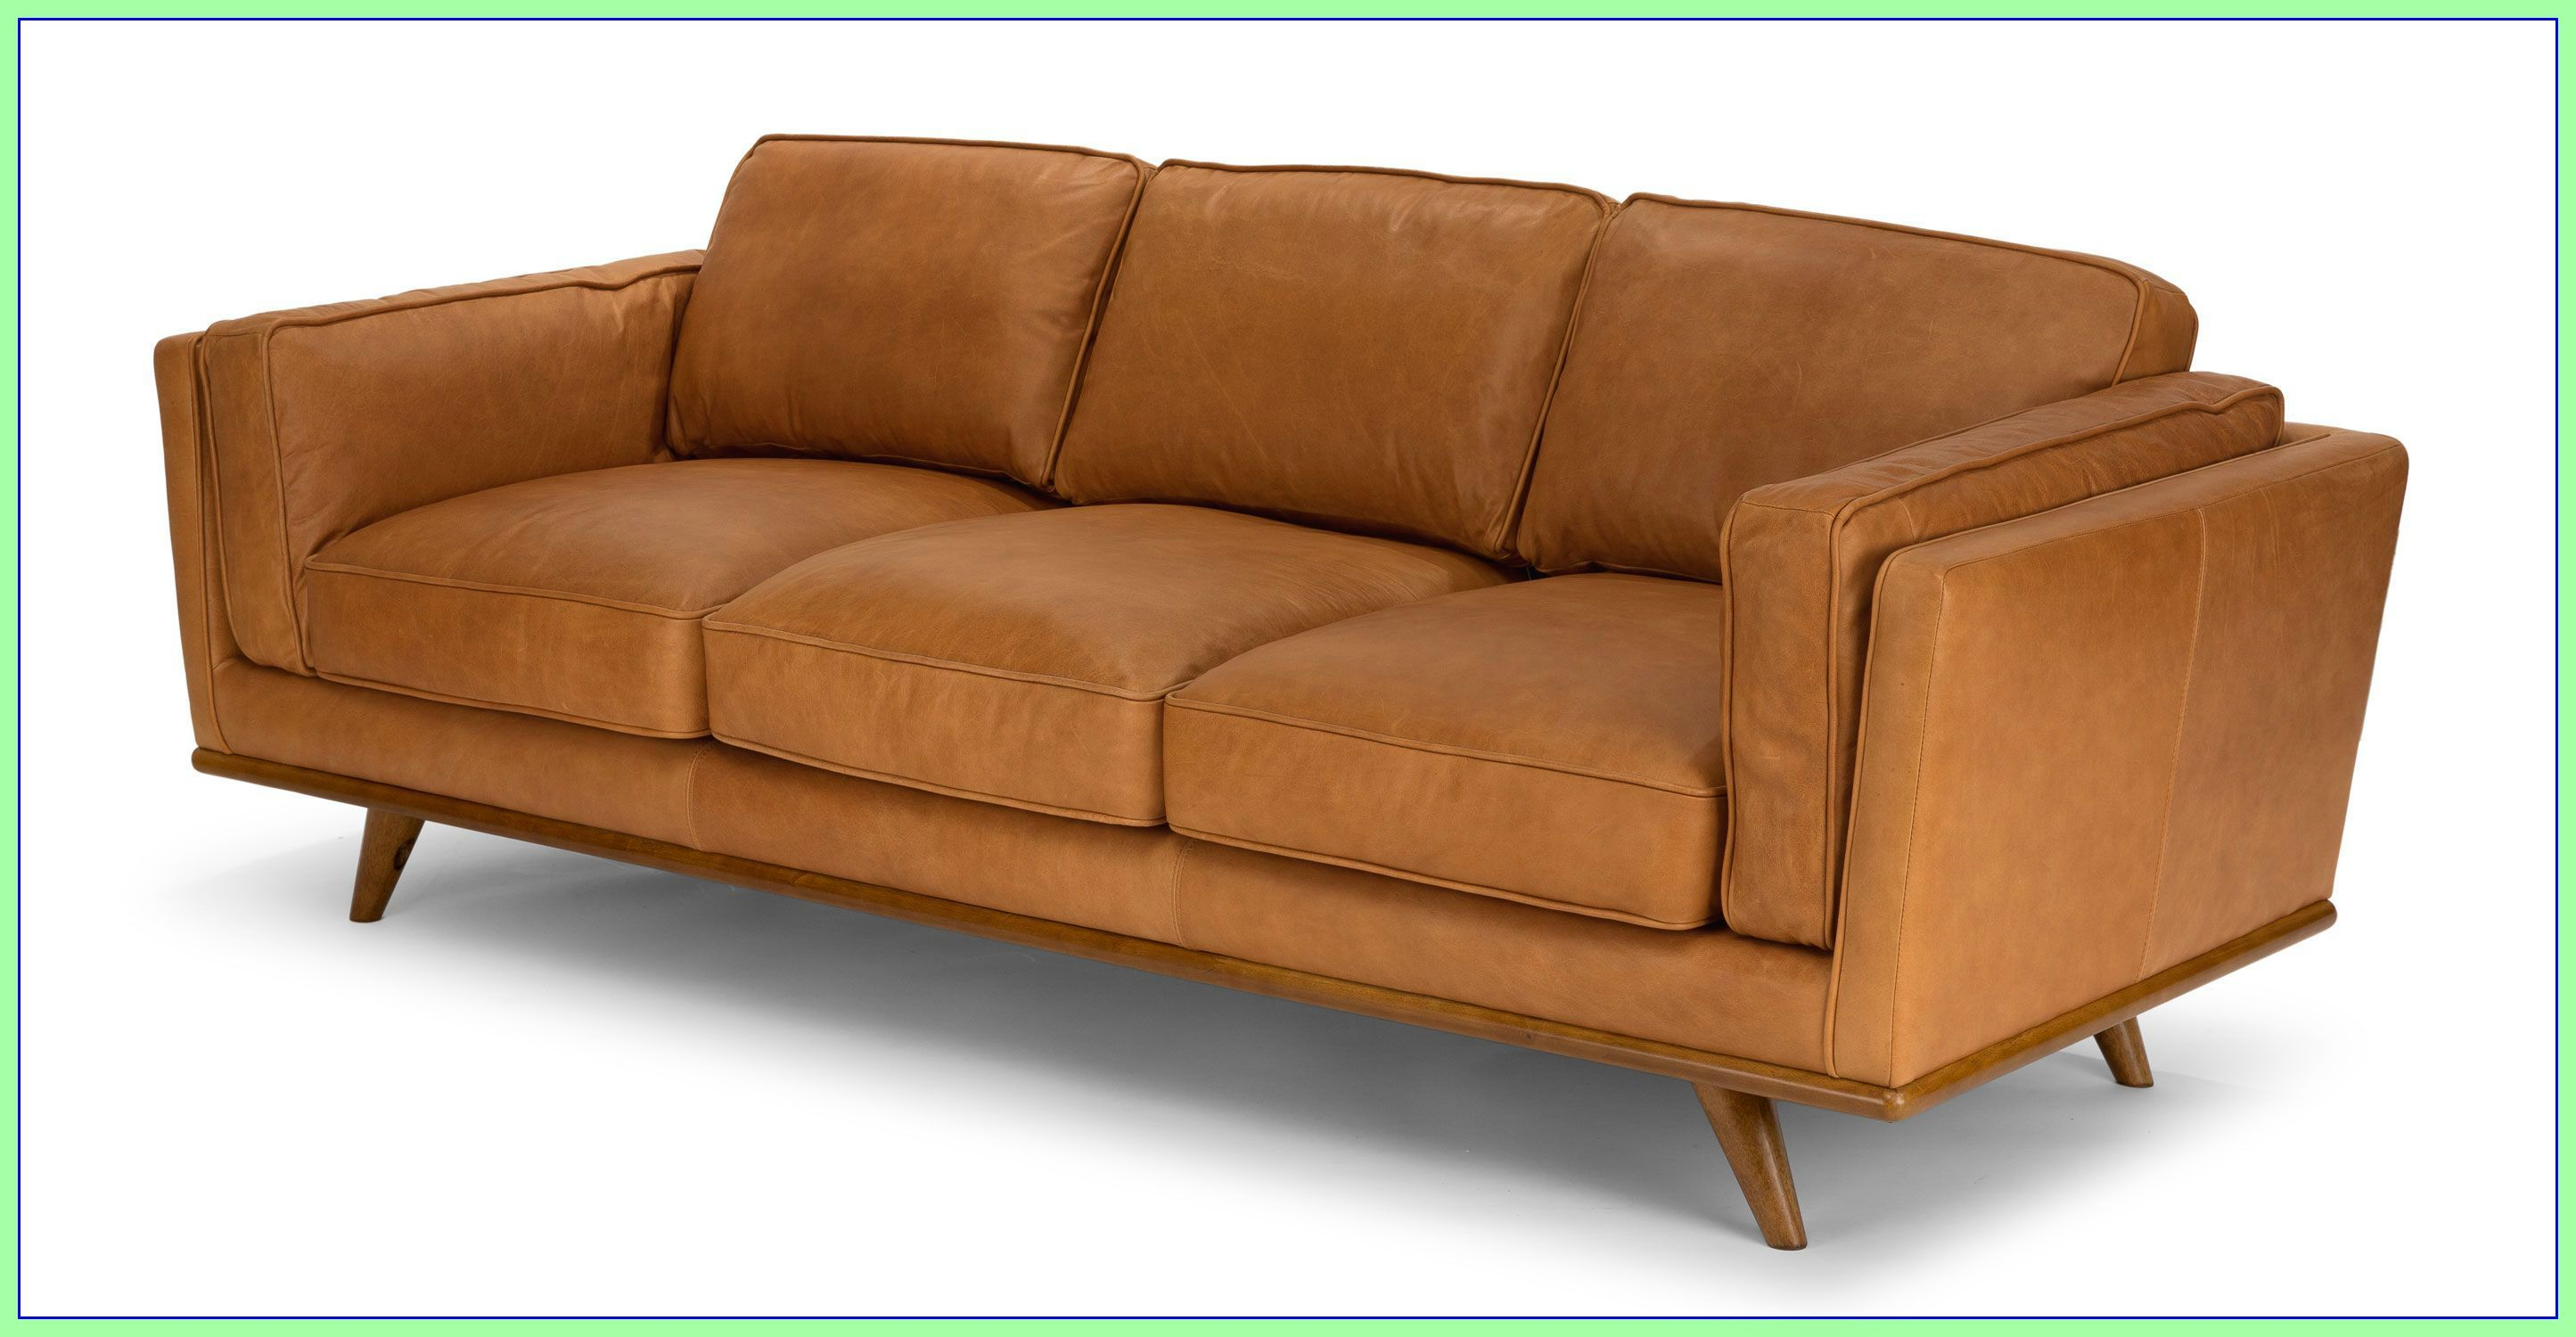 92 Reference Of Article Leather Sofa Reddit In 2020 Tan Leather Sofas Living Room Furniture Sofas Furniture